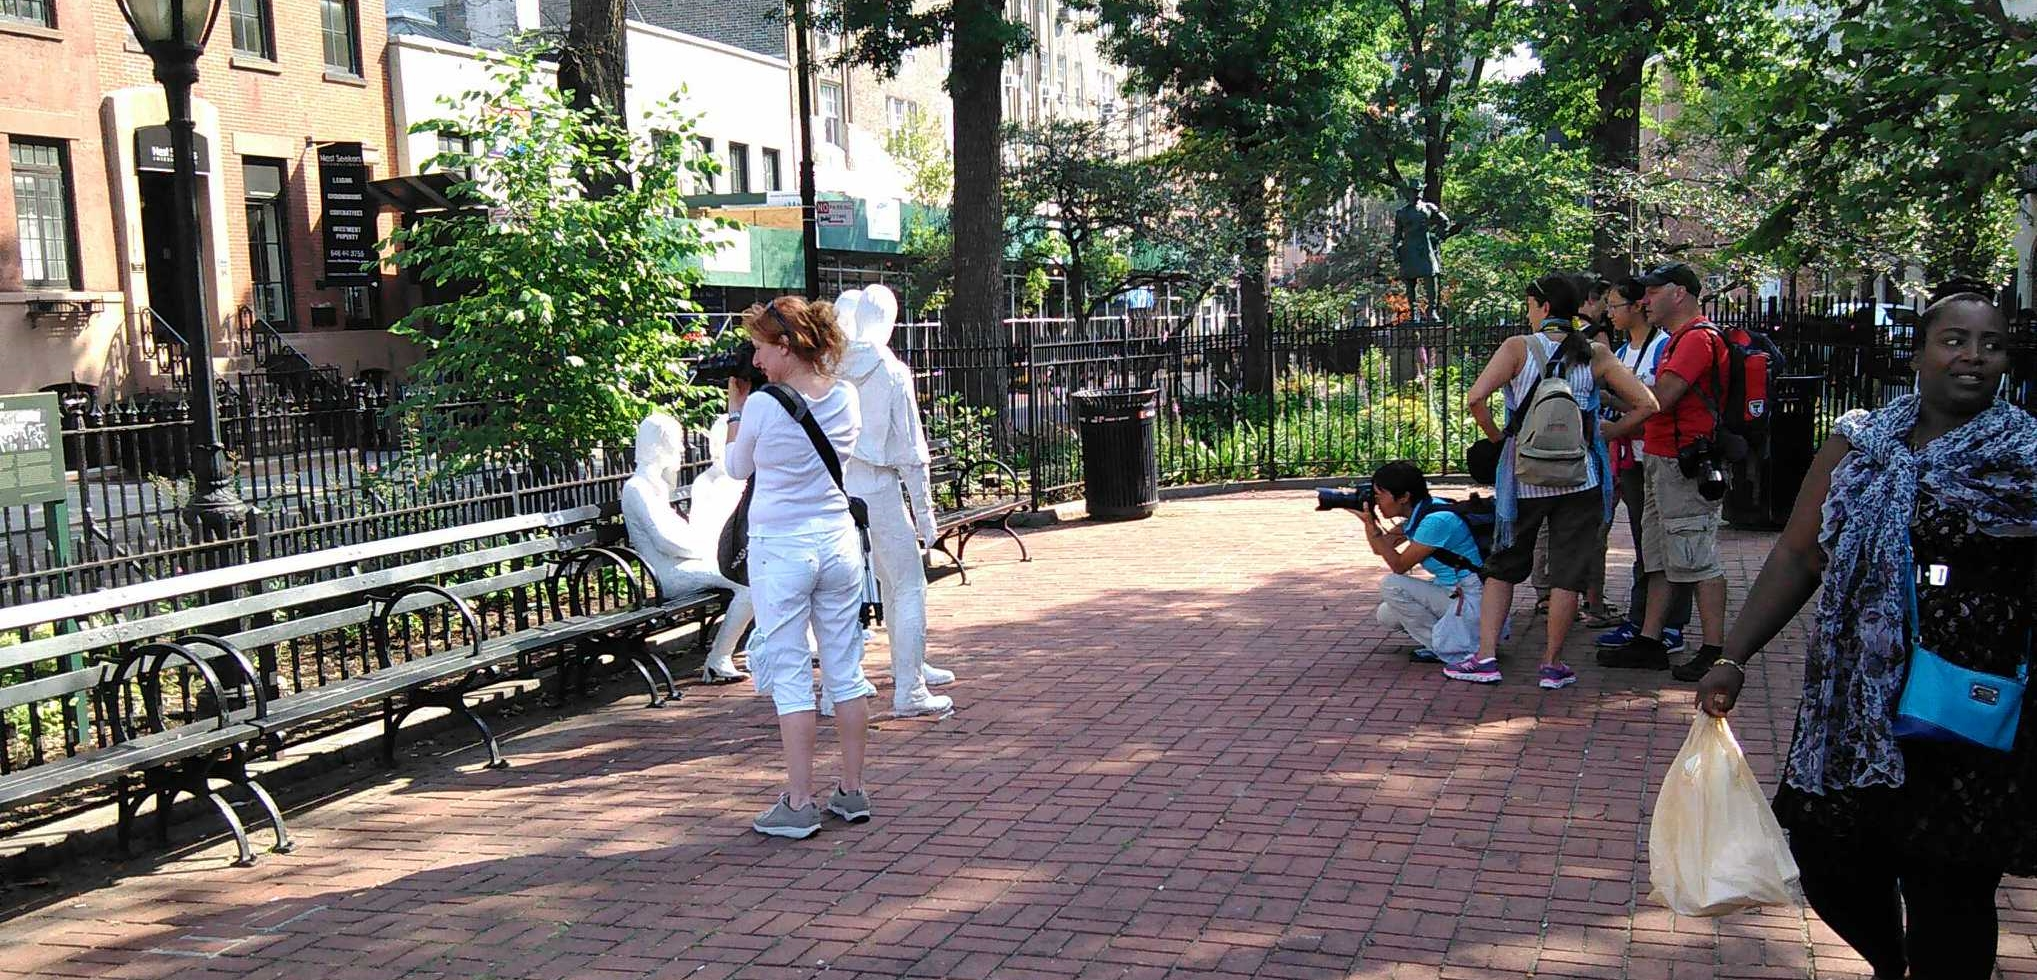 """Tour-goers photograph George Segal's """"Four Figures"""" and the Park Dept. interpretive sign (with Fred W. McDarrah image) at Christopher Park, which lawmakers are now pushing for National Park status. Stonewall is in background with the green scaffolding."""